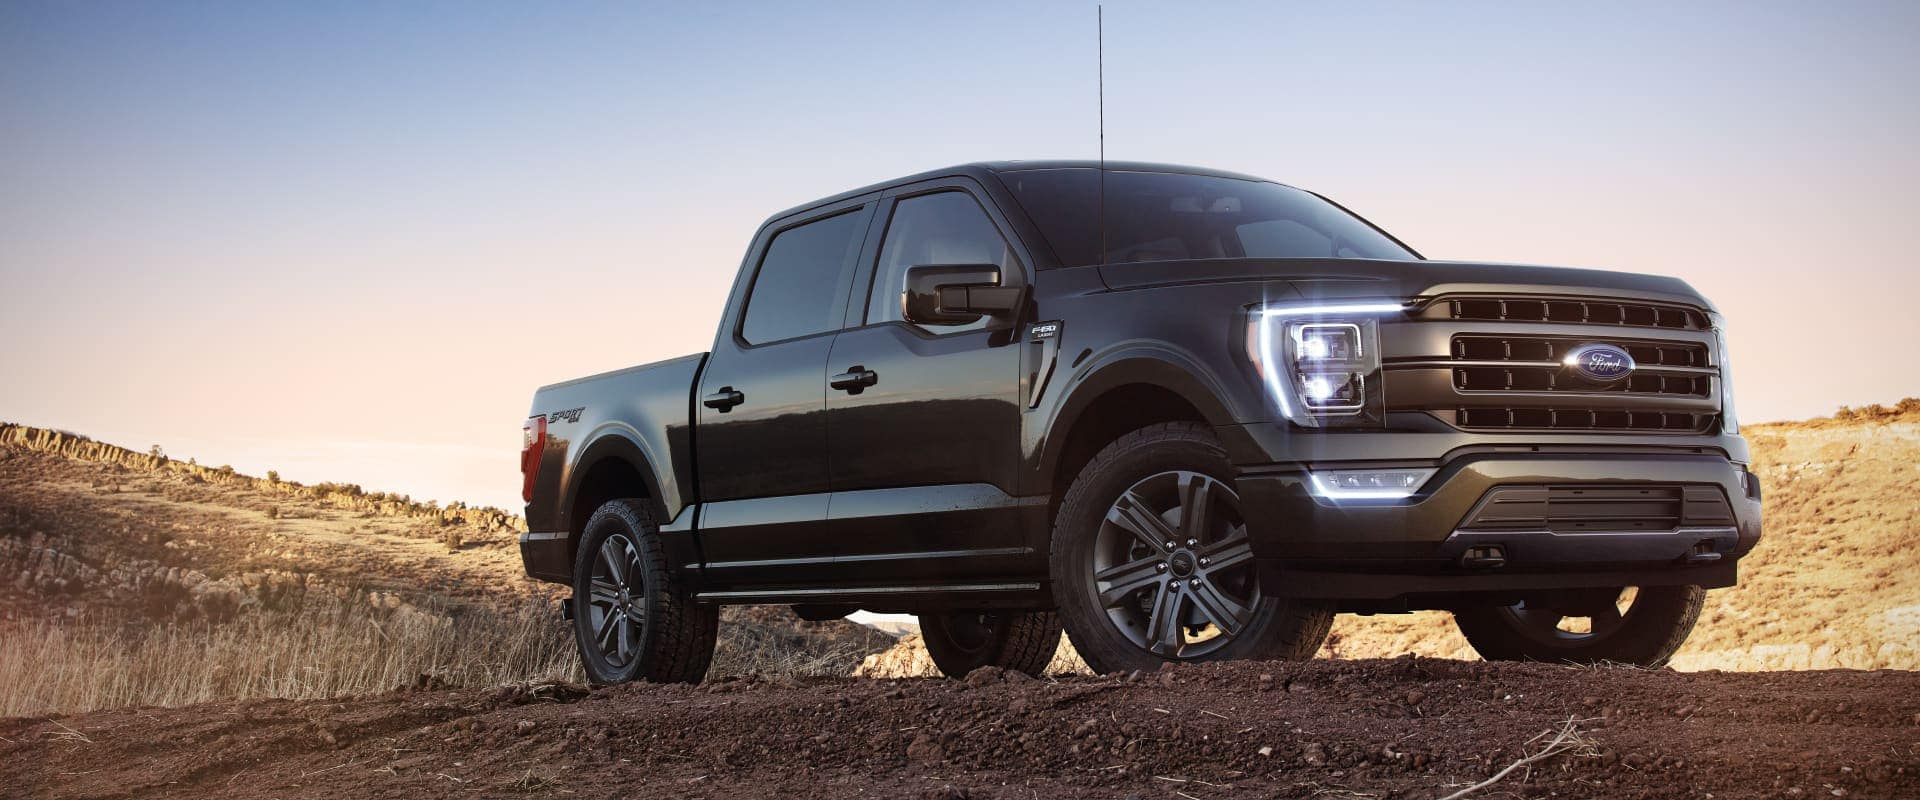 2021_Ford-f150-reserve